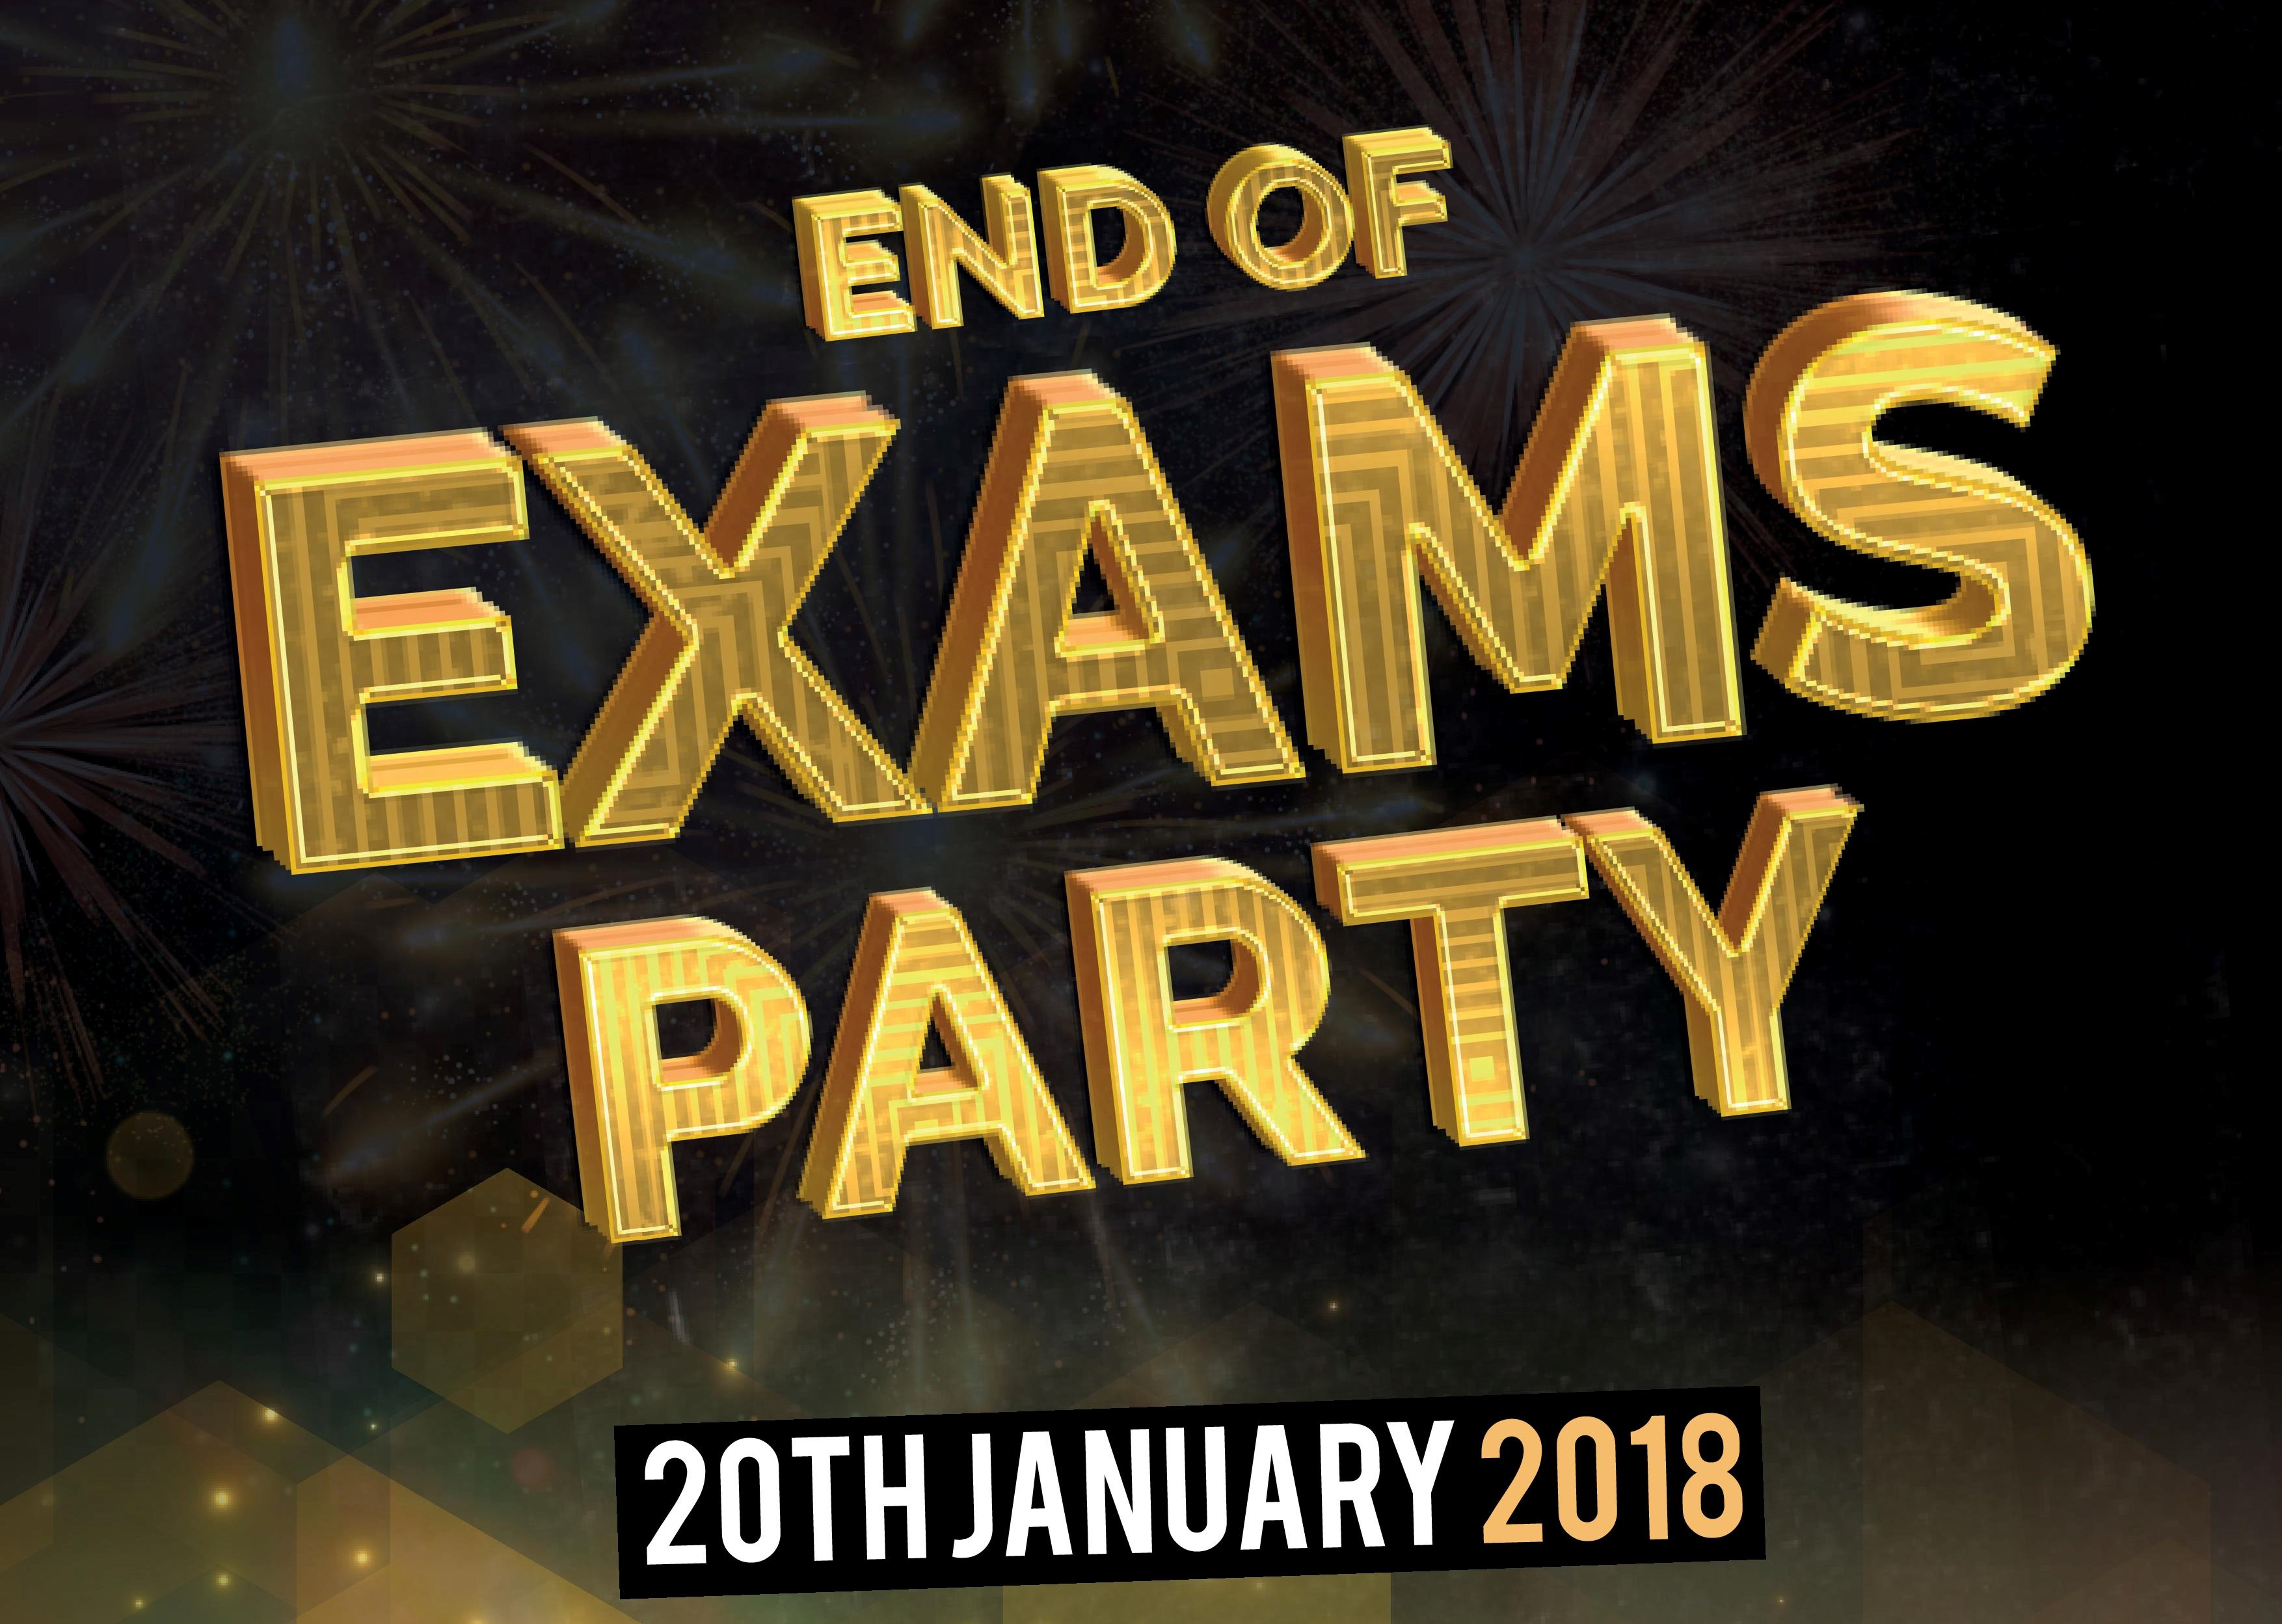 POSTPONED: End of Exam Party!